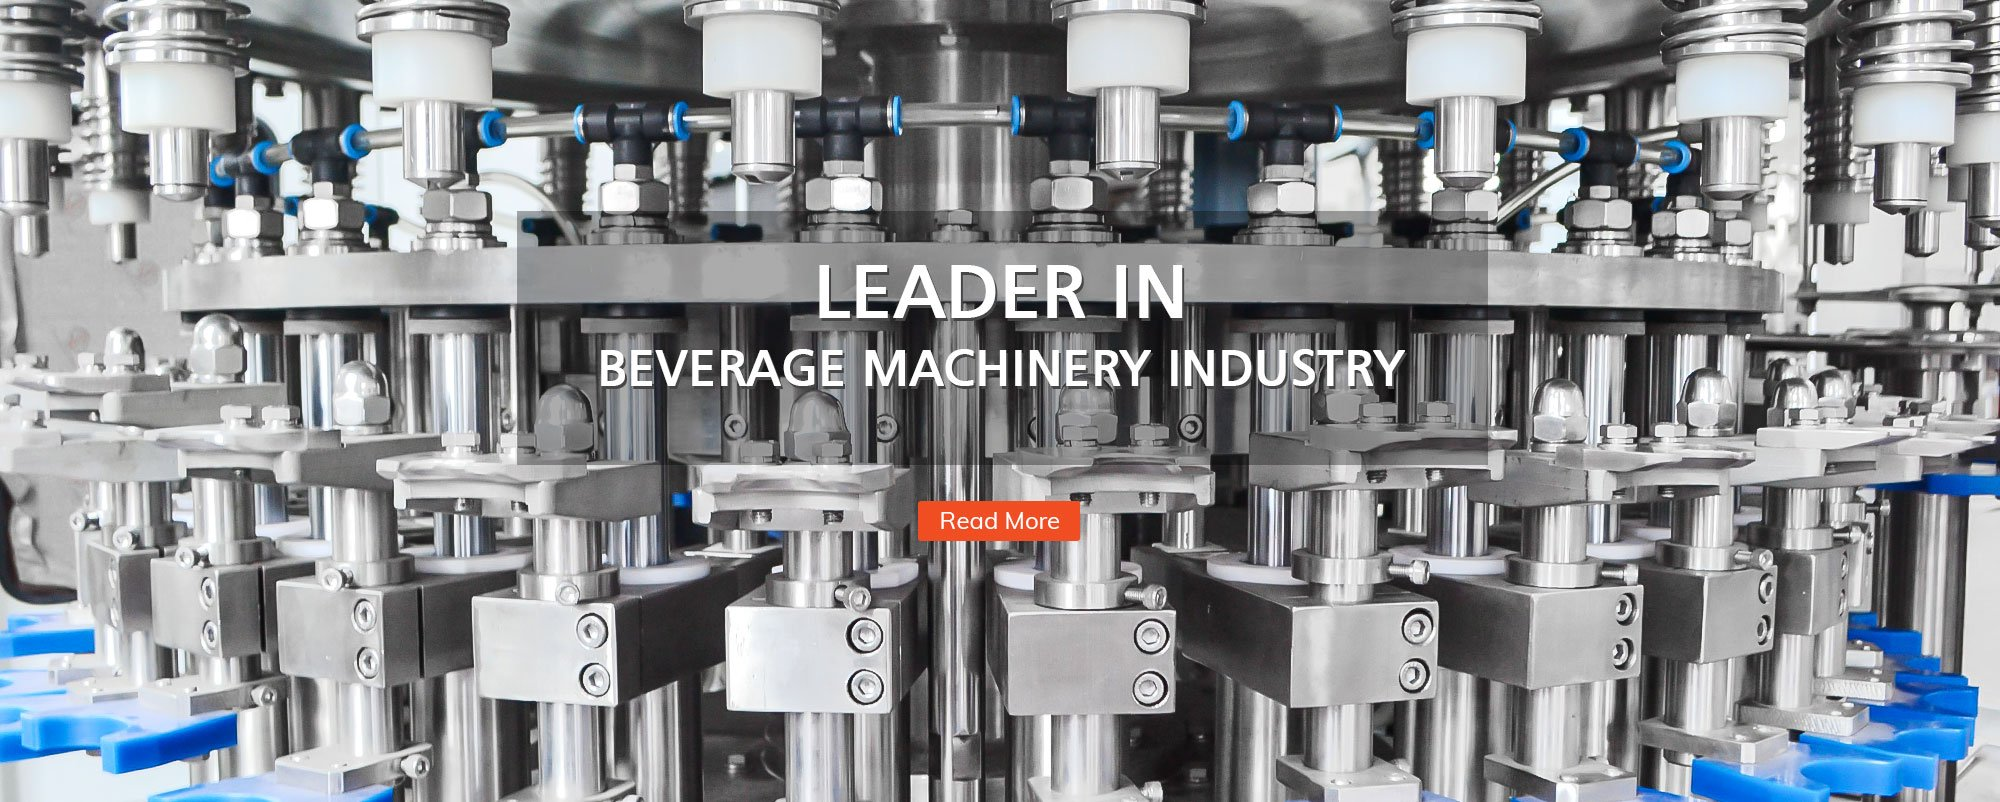 Leader in Beverage Machinery Industry